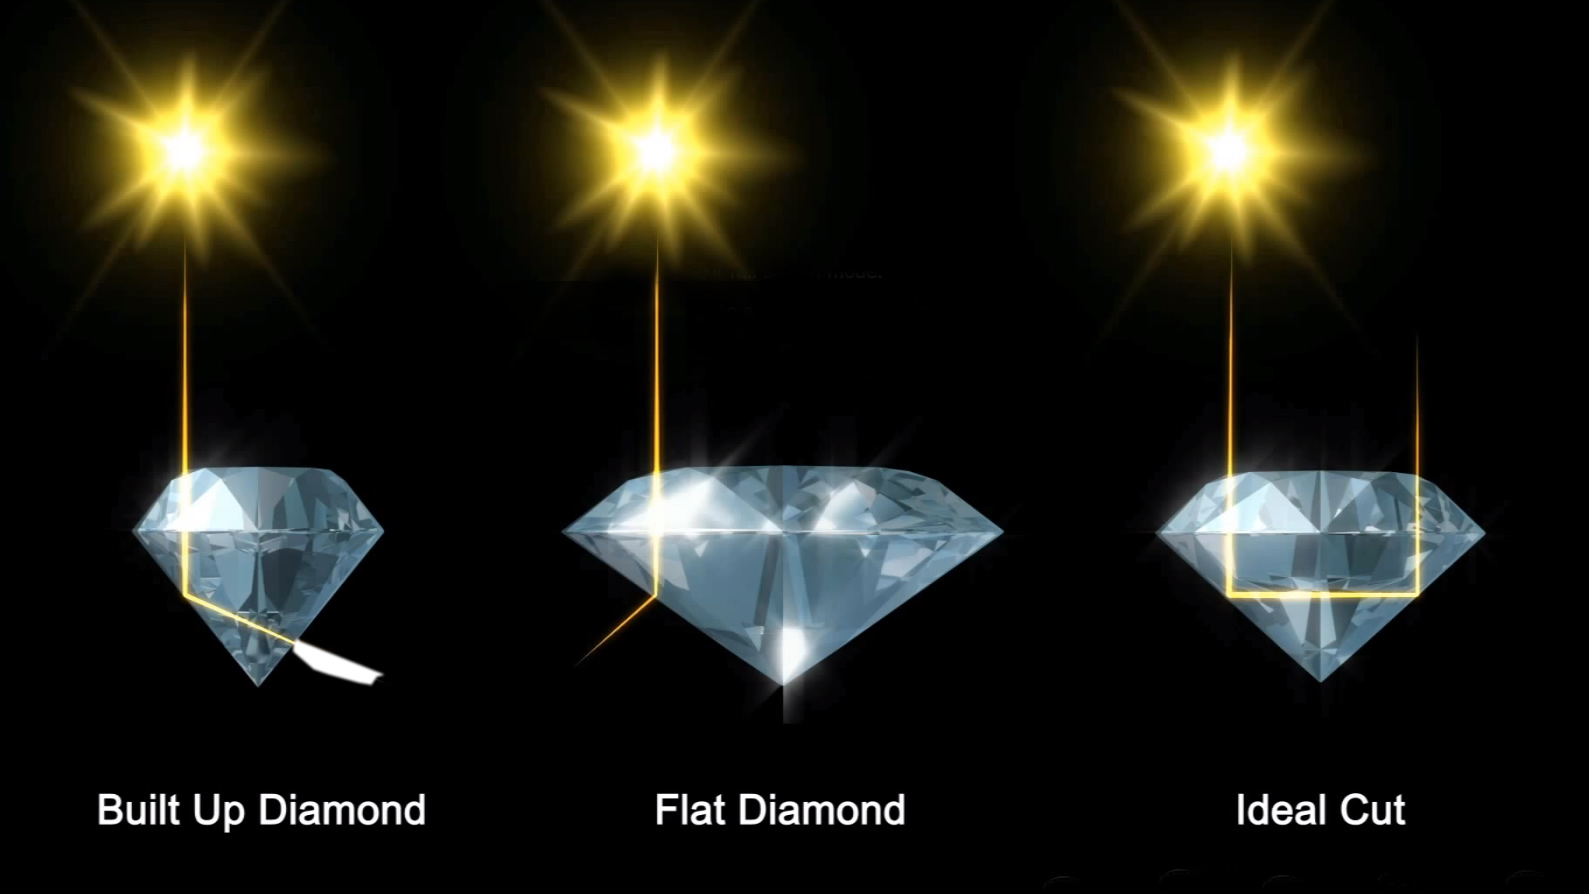 Diamond cut - what is it?